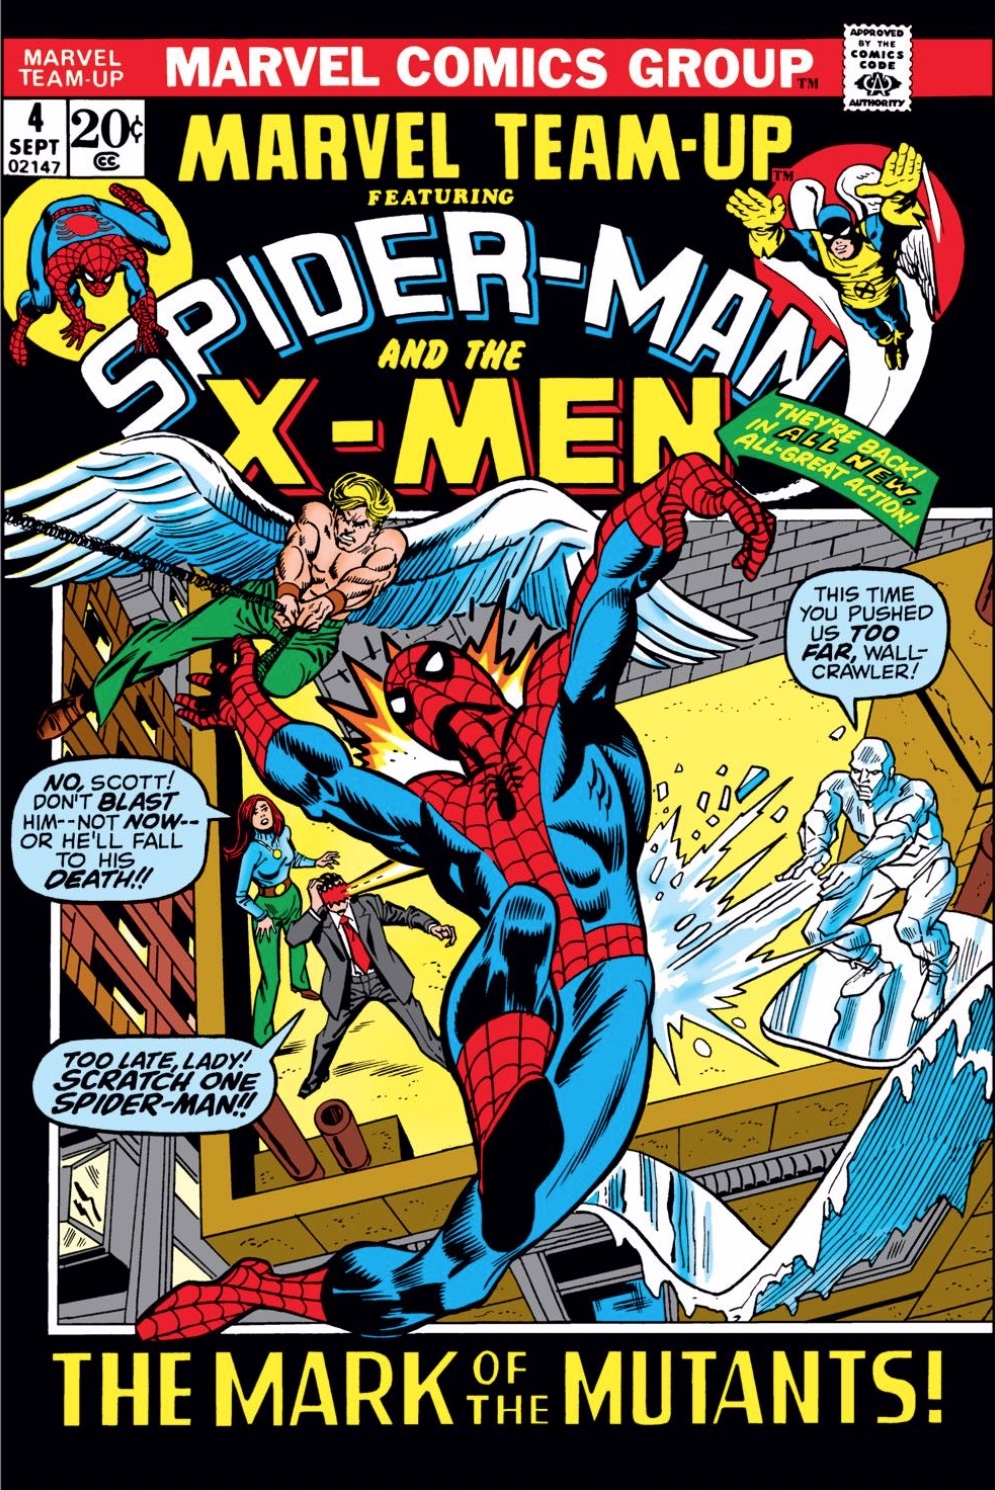 Cyclops, Angel, and Iceman attacking the swinging figure of Spider-Man from behind, to Marvel Girl's dismay.